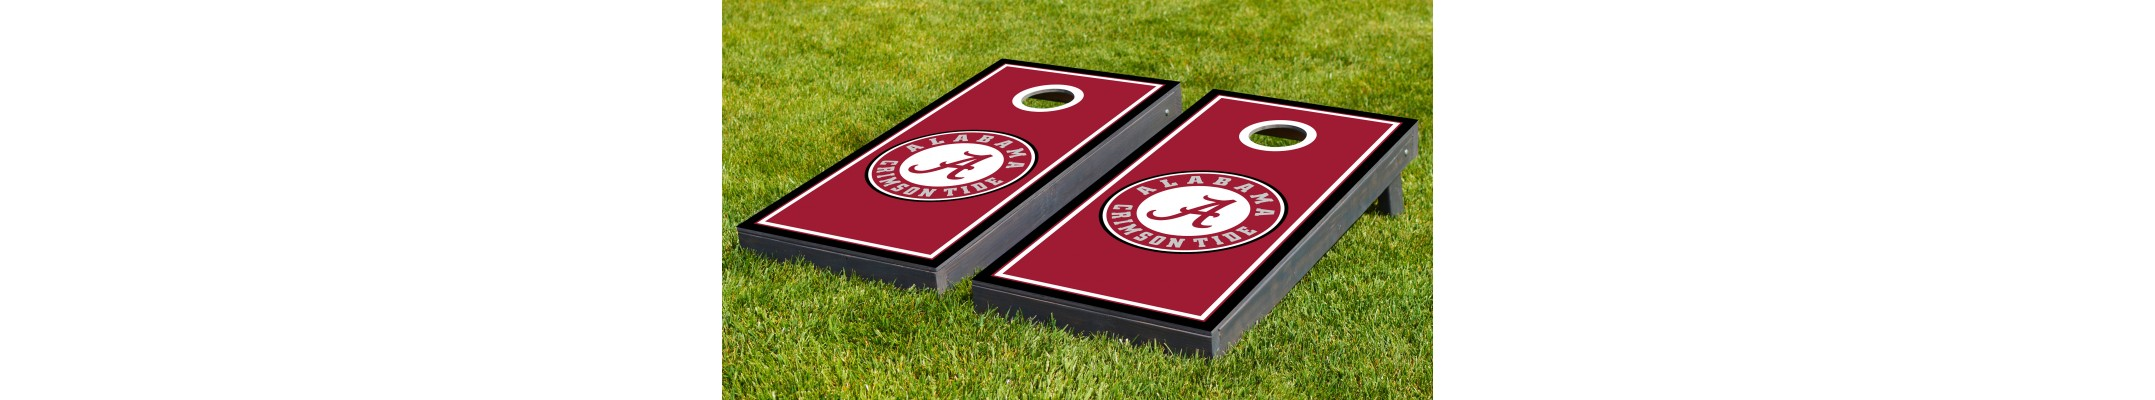 The College Logo Boards